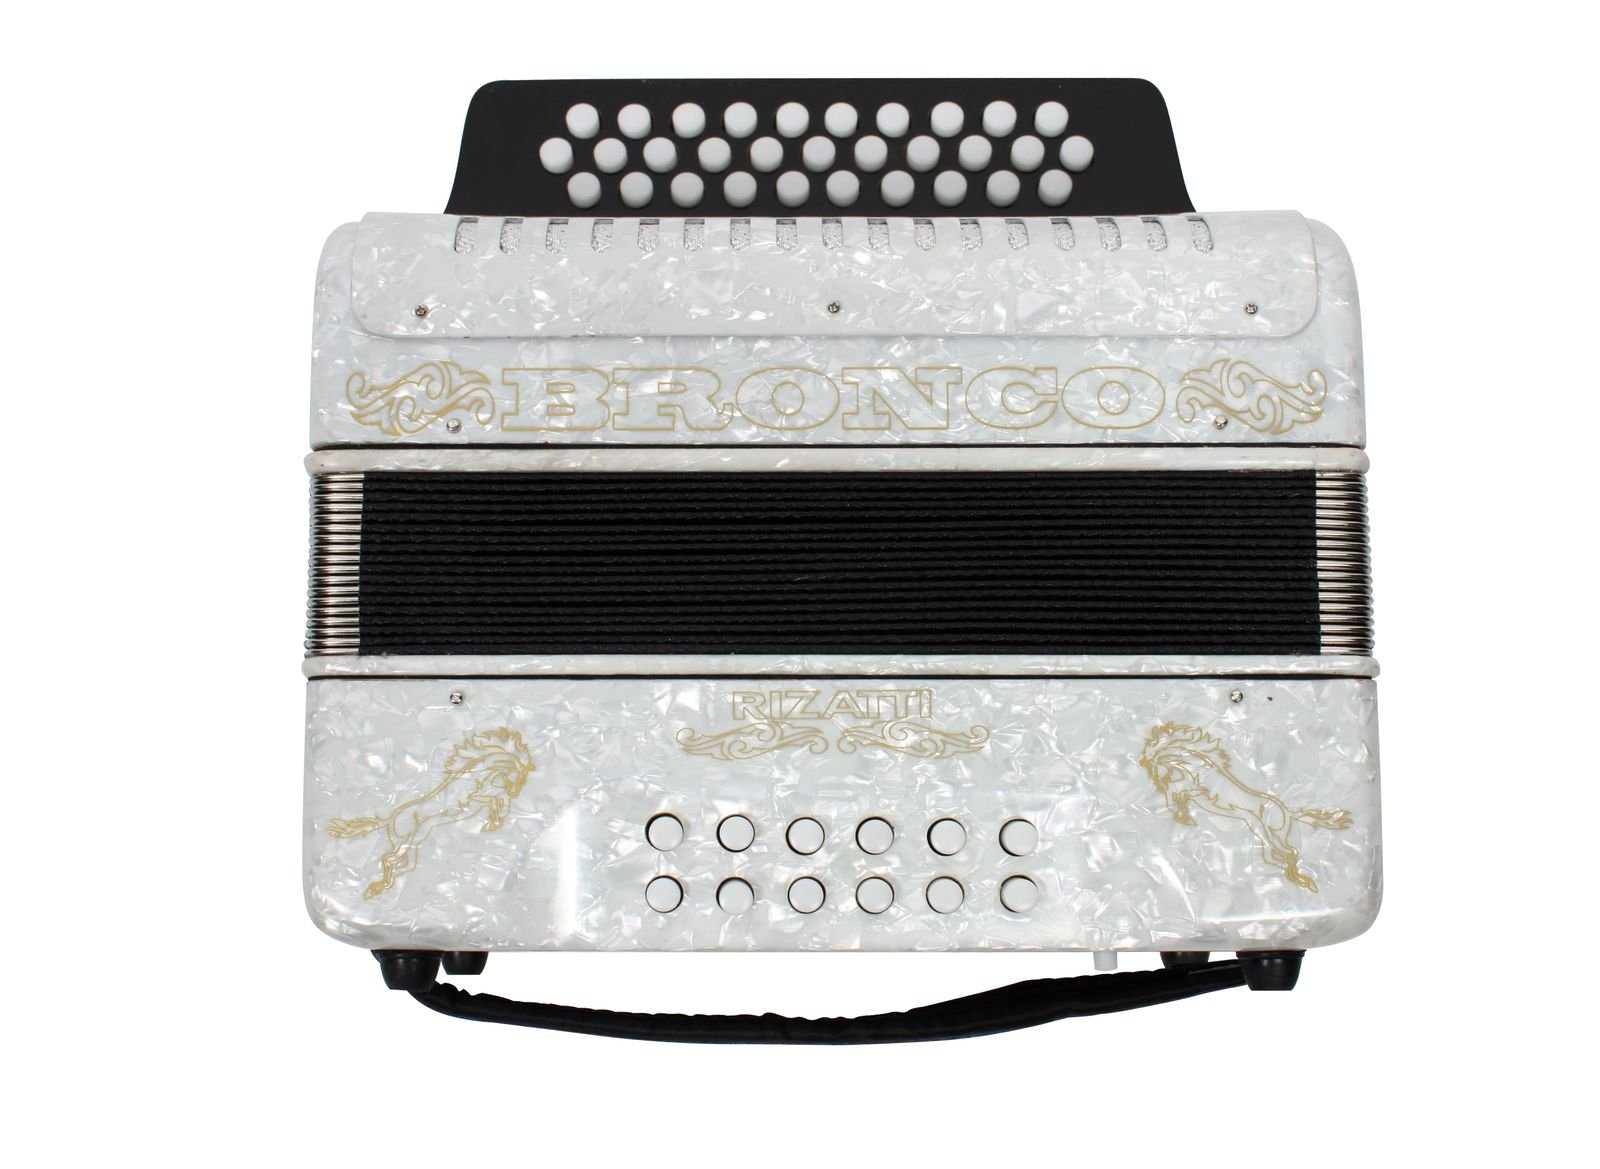 Rizatti Bronco RB31FW Diatonic Accordion - White - Key F/Bb/Eb by RIZATTI (Image #3)